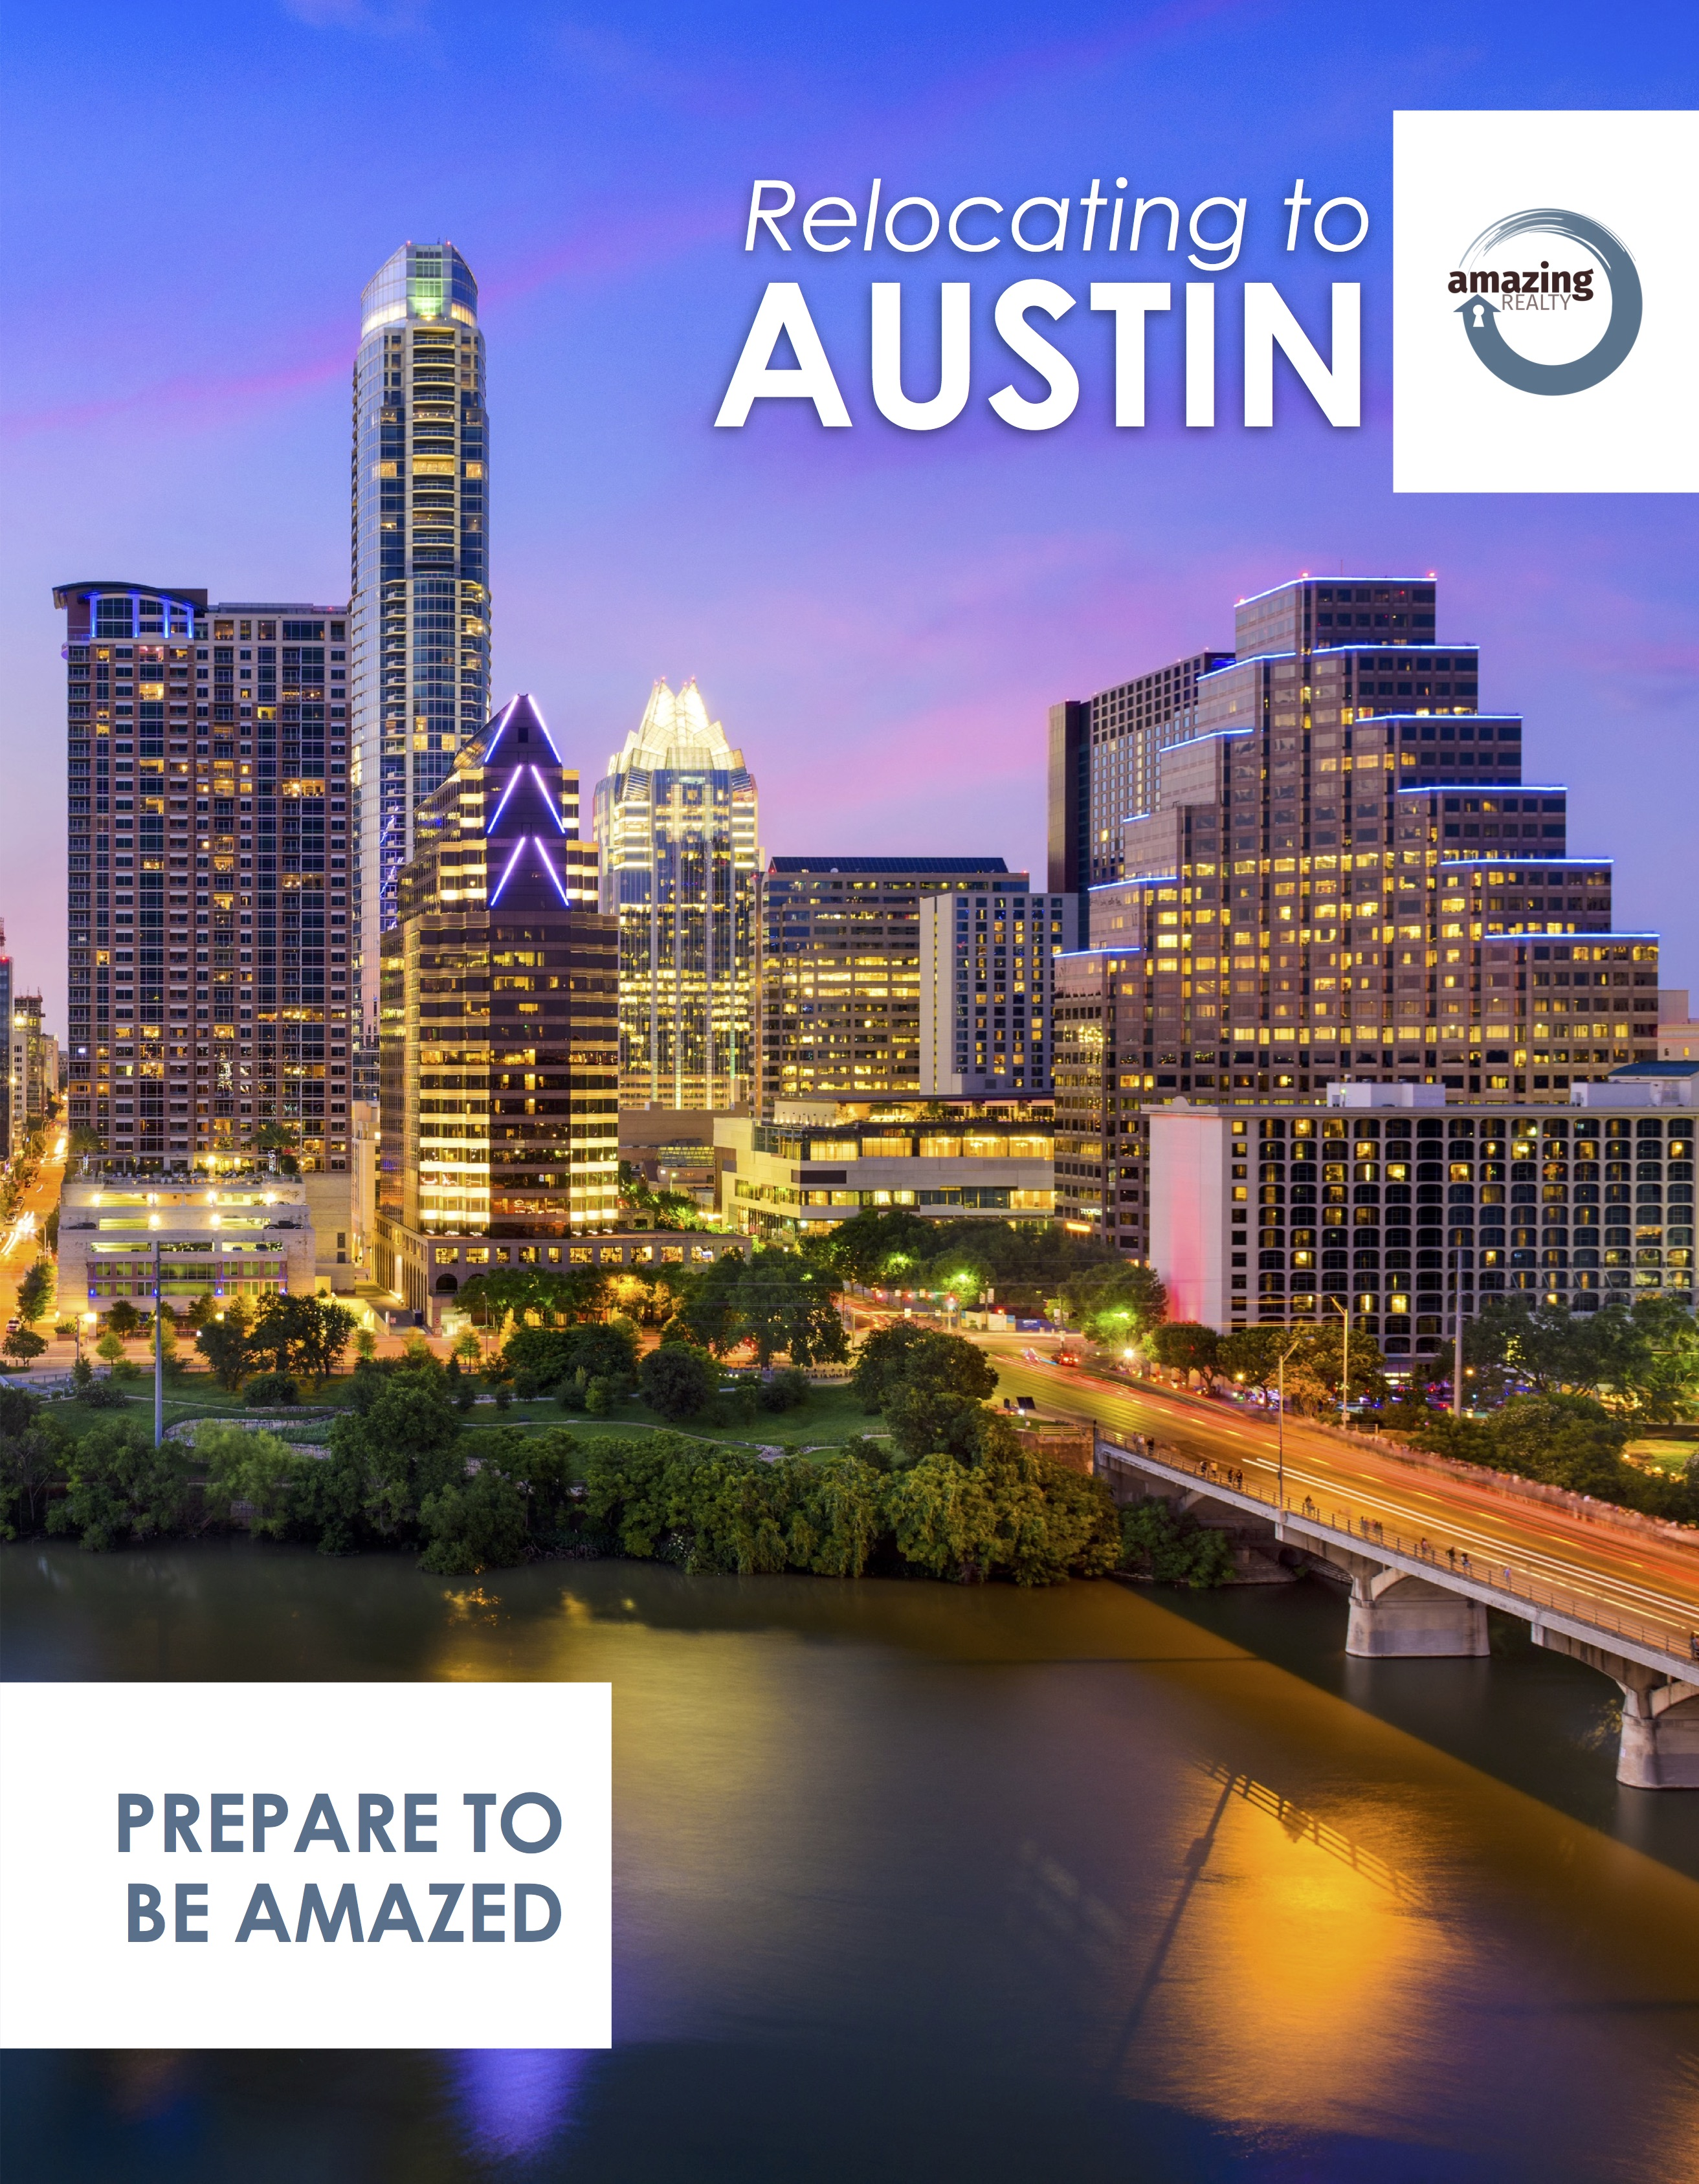 Relocating to Austin Brochure - Amazing Realty by Agent Operations